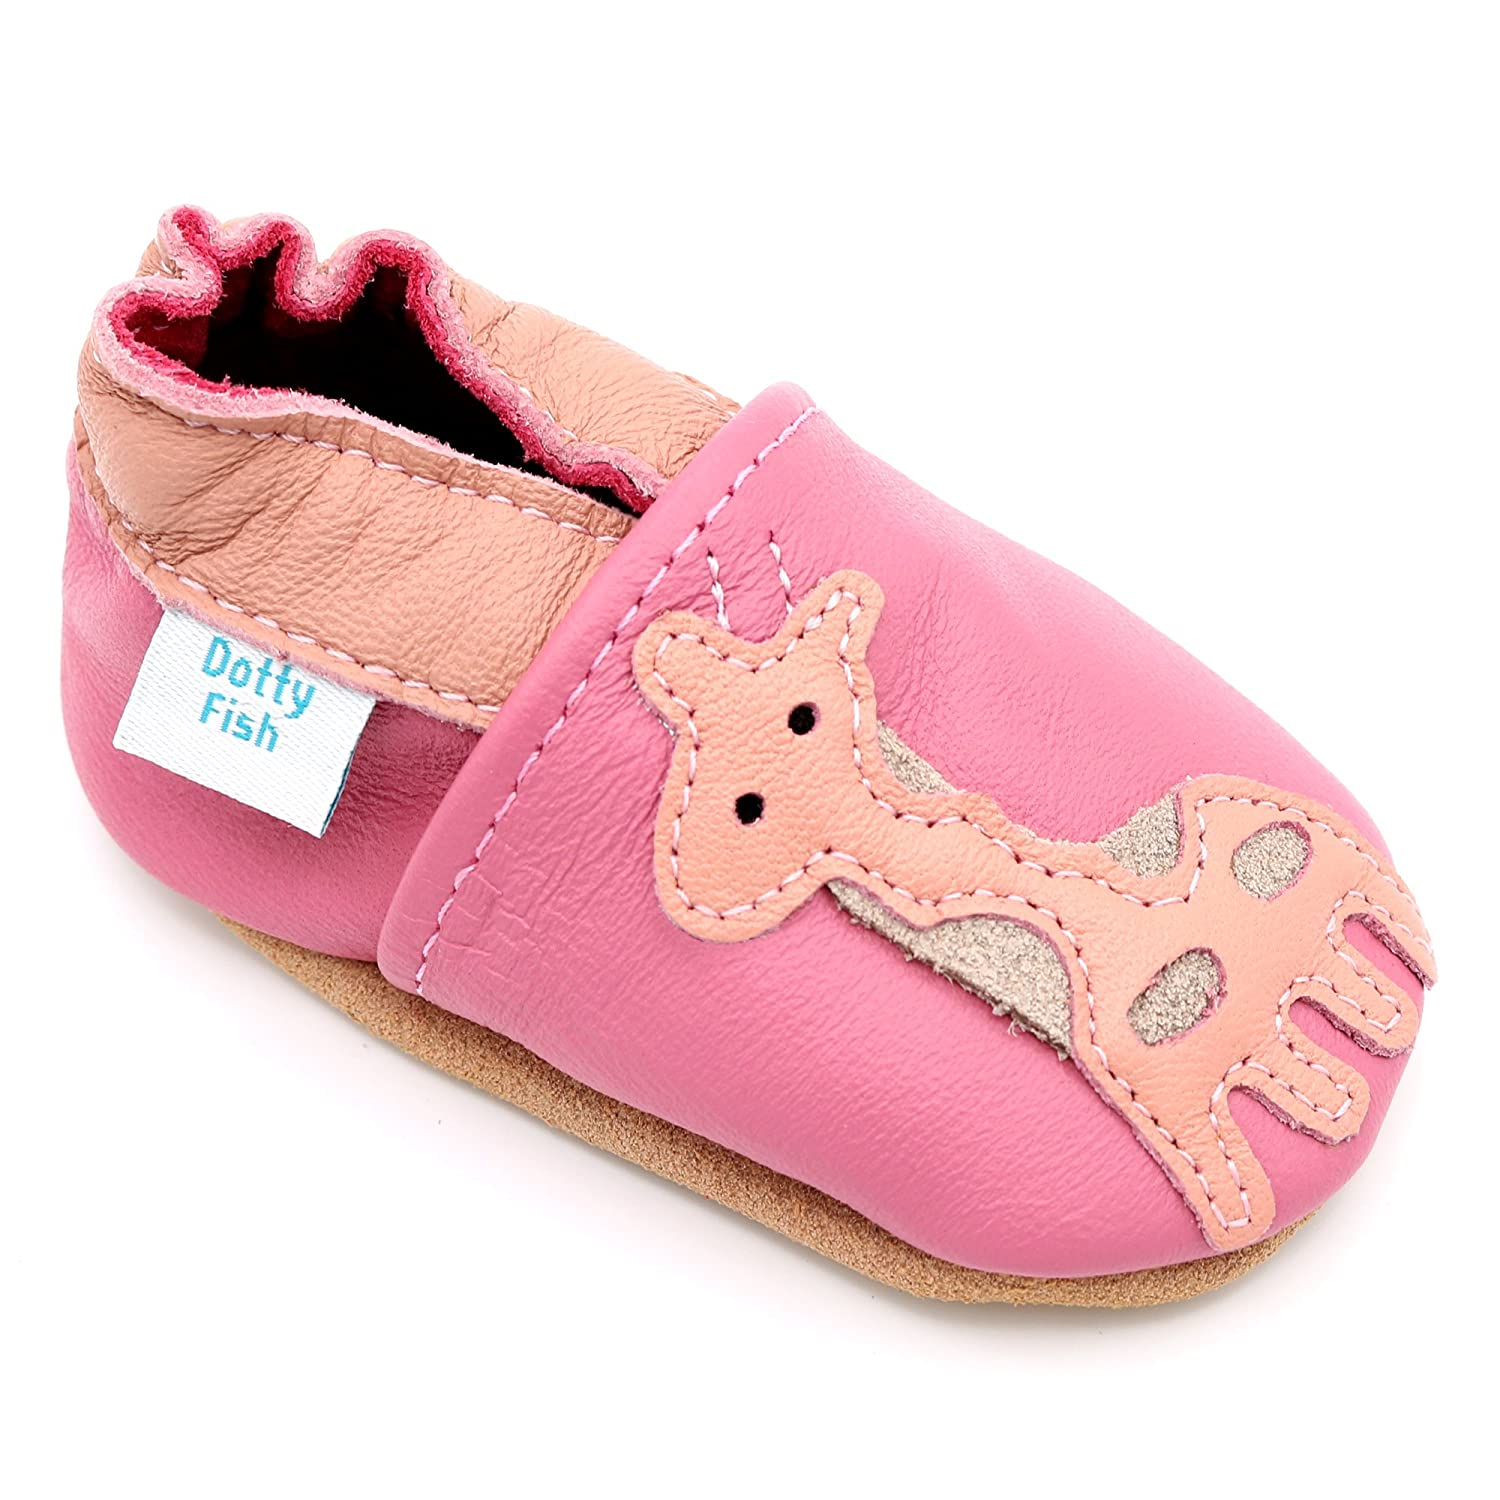 Dotty Fish Soft Leather Baby Shoe. Toddler Shoes. Non Slip. Pretty Bird, Owl, Giraffe and Butterfly Designs for Girls. Newborn to 3-4 Years. FBA-BIRDS-P